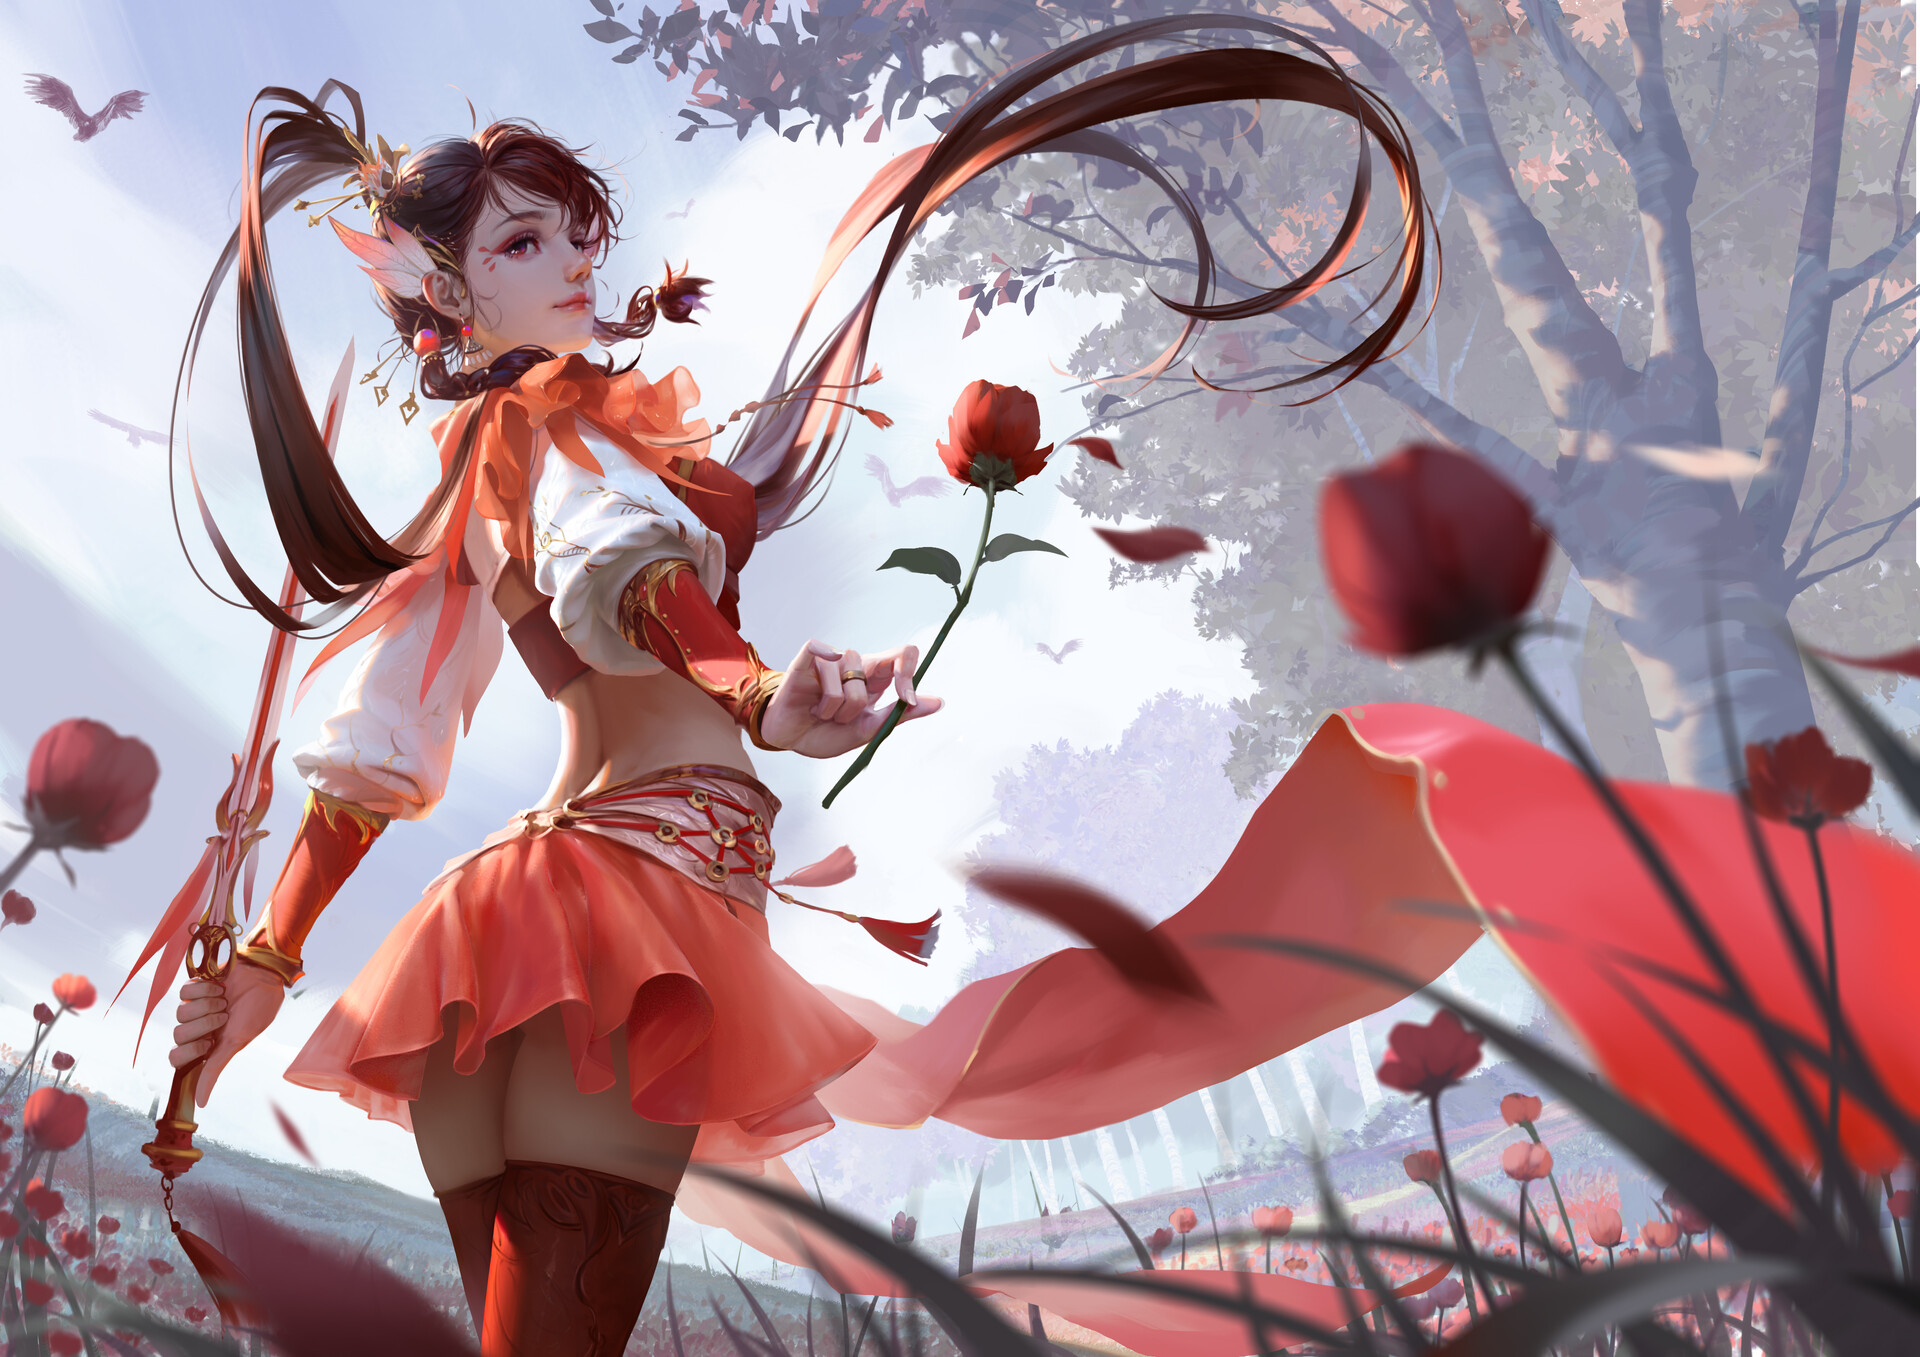 General 1920x1357 Rui Li drawing women brunette ponytail face paint looking away warrior sword skirt red clothing thigh-highs flowers poppies birds field wind low-angle anime girls girls with swords long hair rose miniskirt trees San guo sha